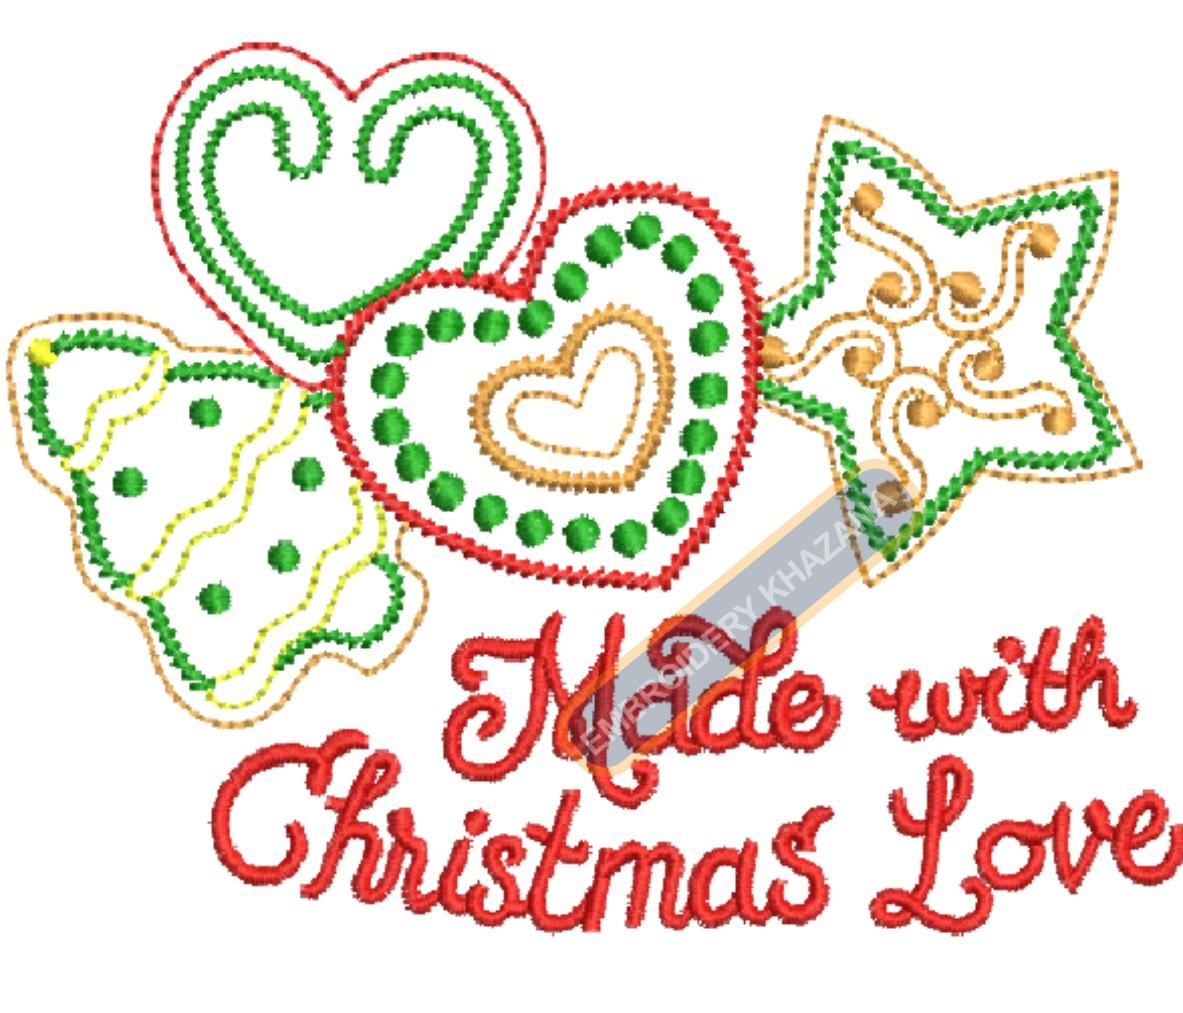 1433241879_christmas love embroidery.jpg